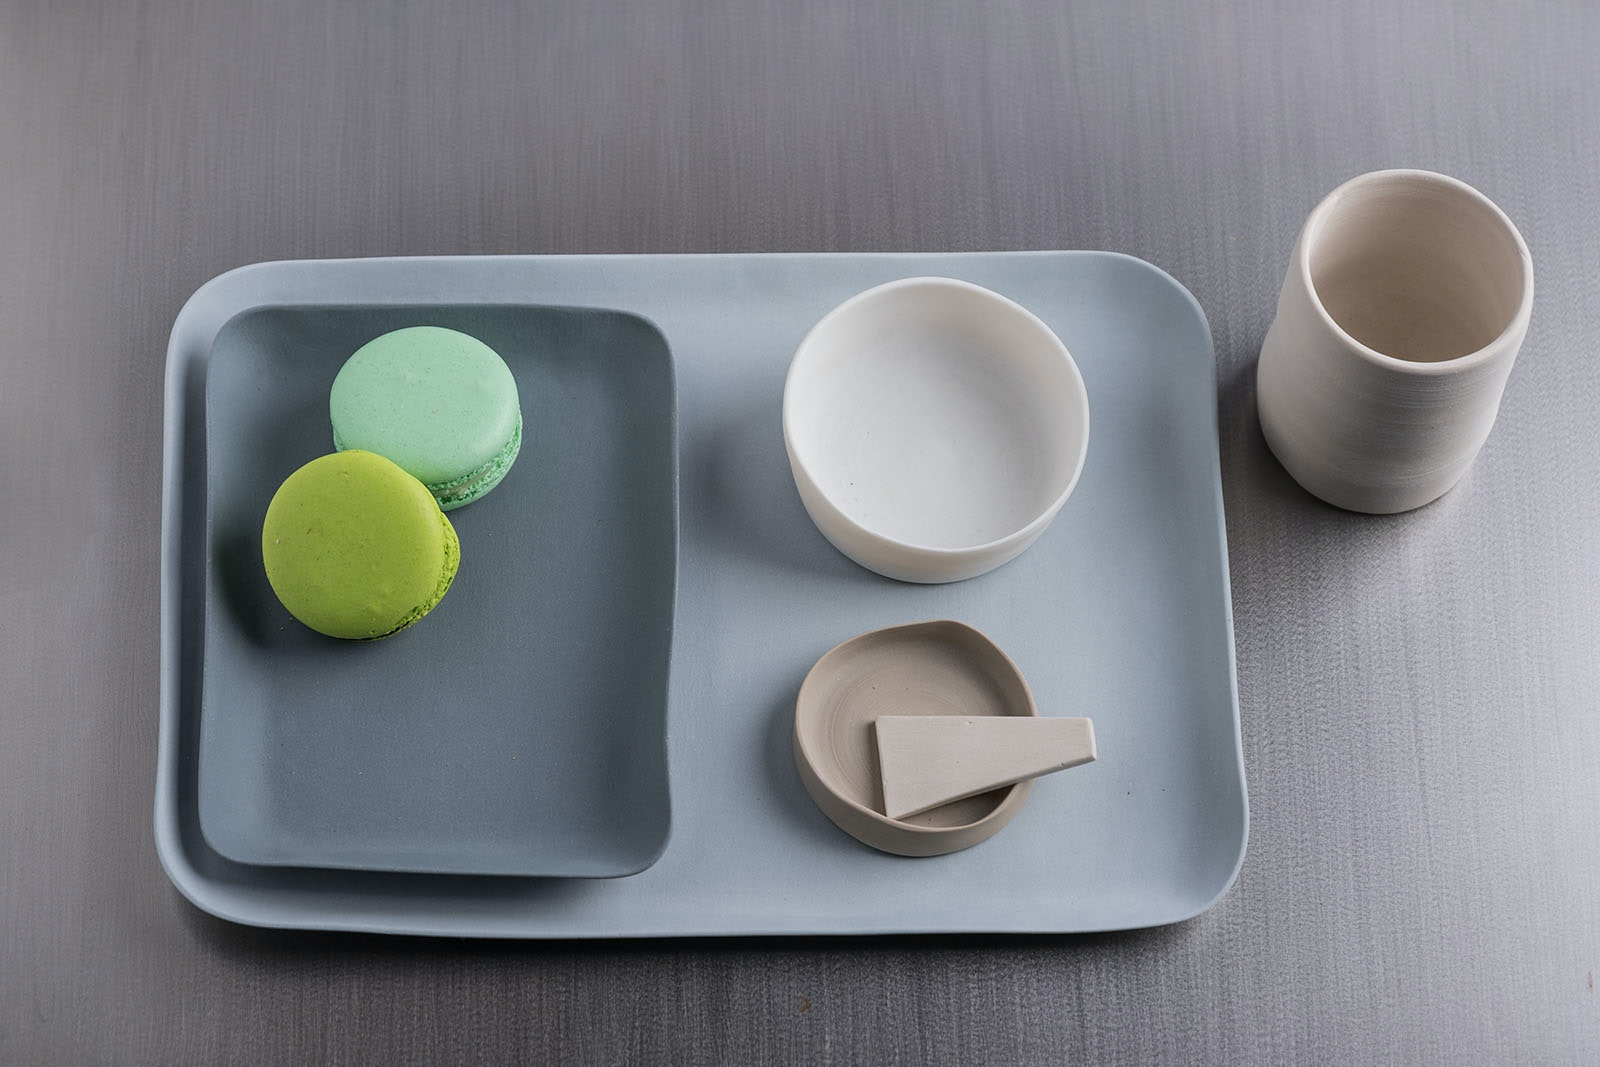 Dainty dishware from Dolce Utopia